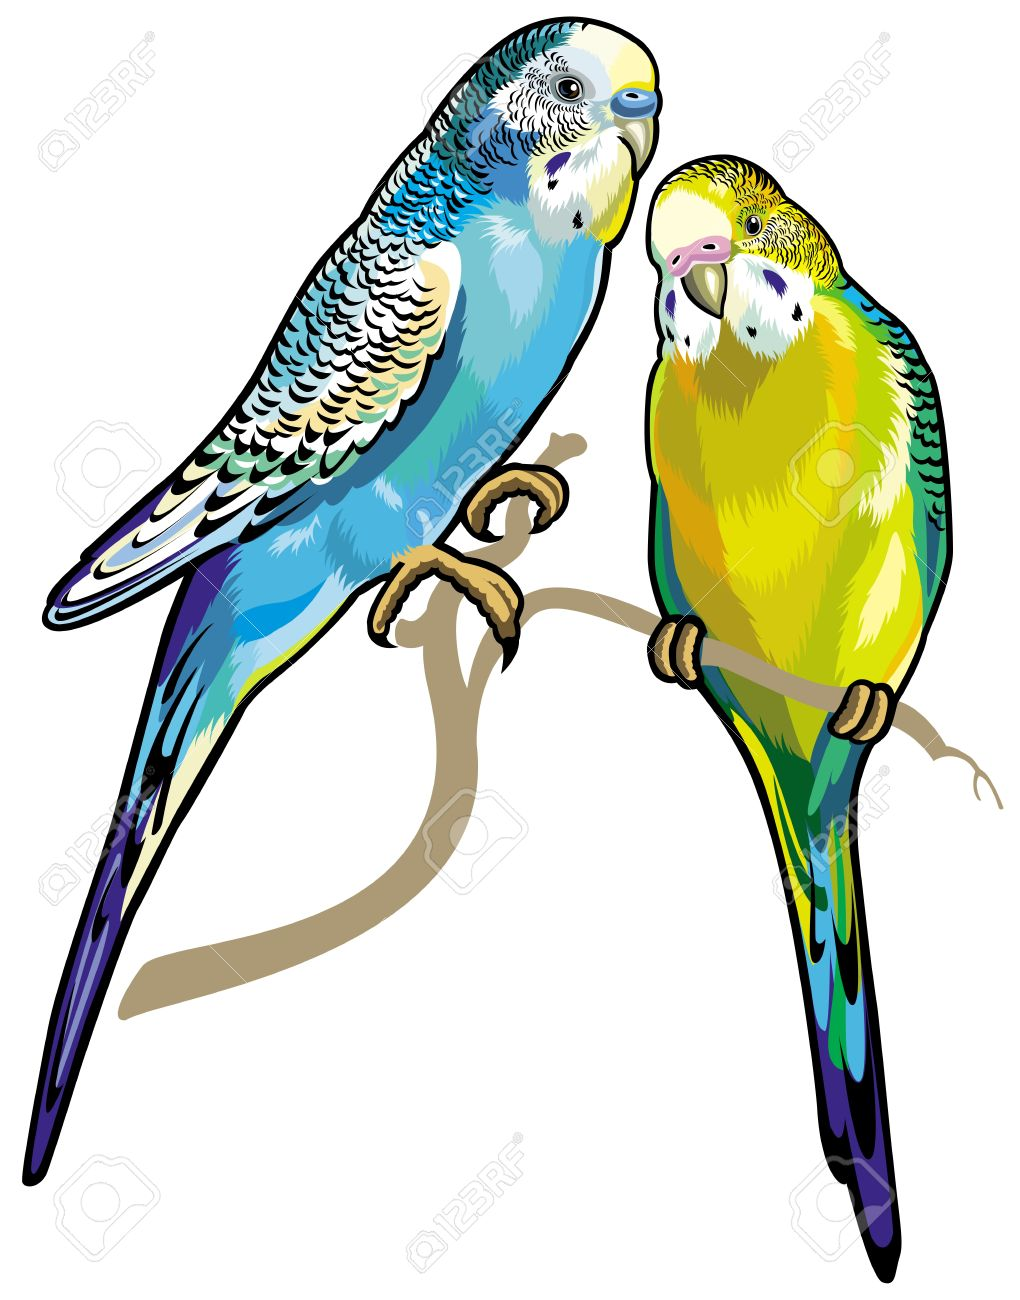 Parakeet clipart #18, Download drawings